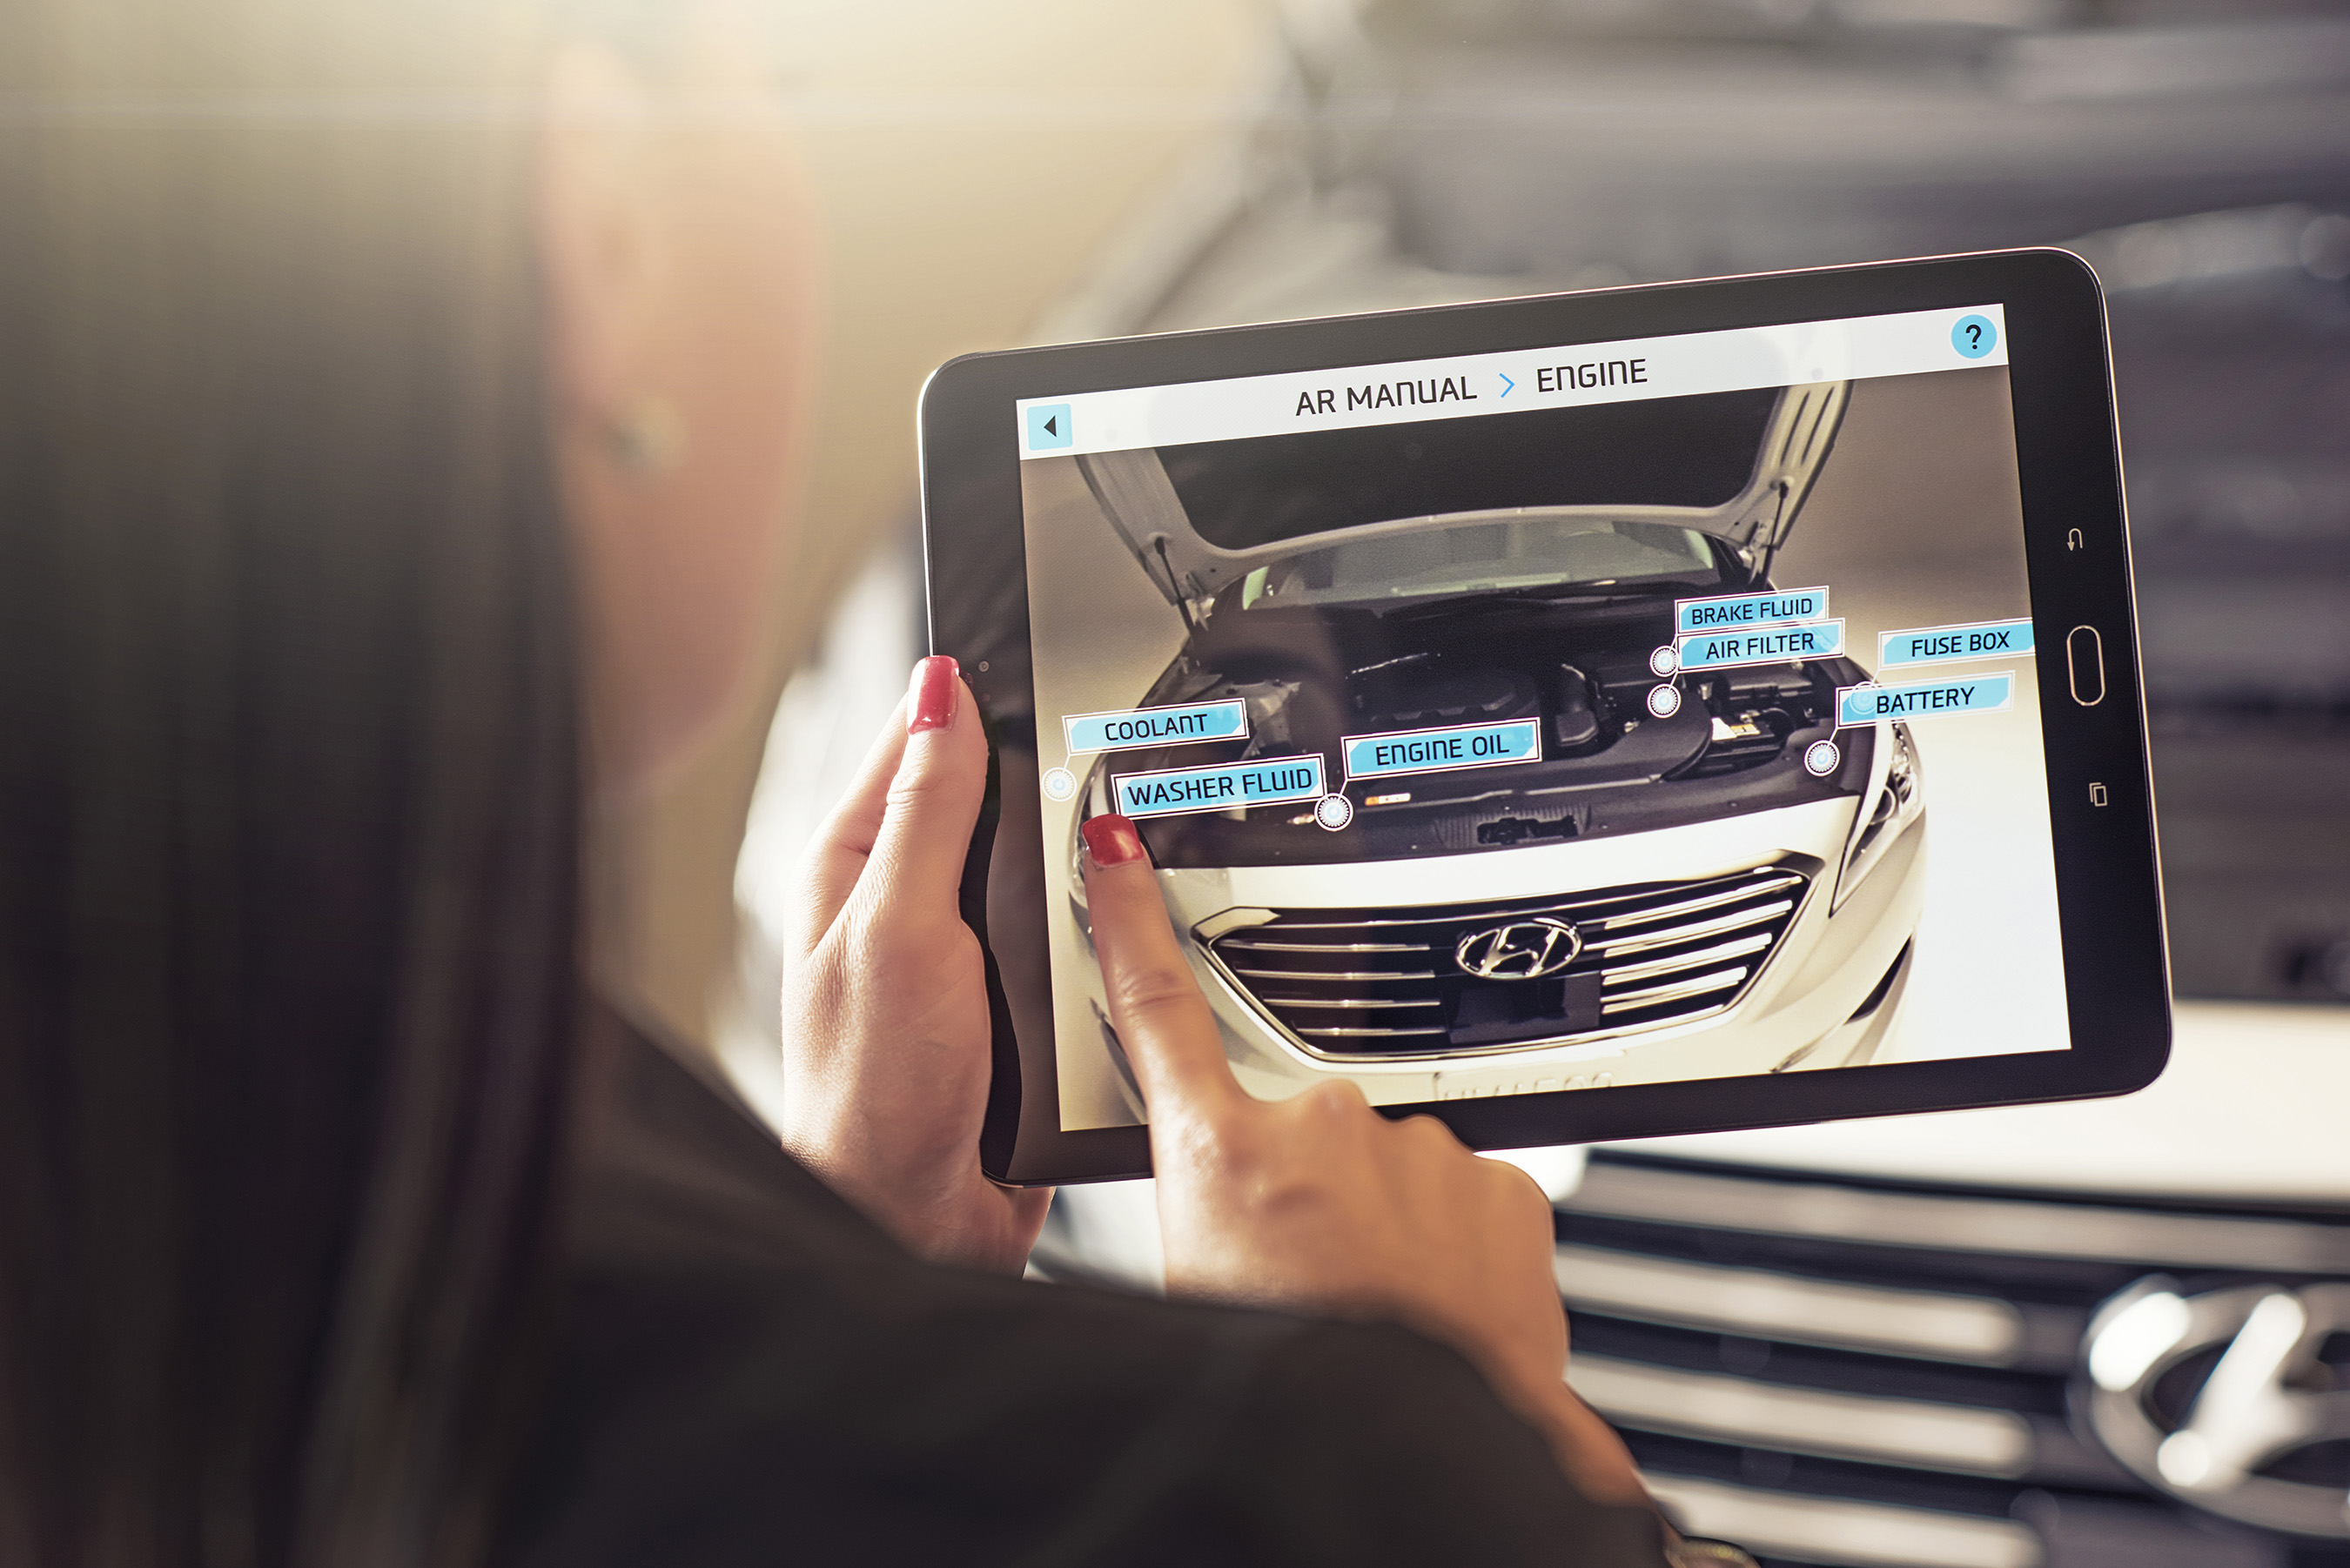 First Mainstream Automaker to Launch 2D/3D Owner's Manual for Smartphones and Tablets